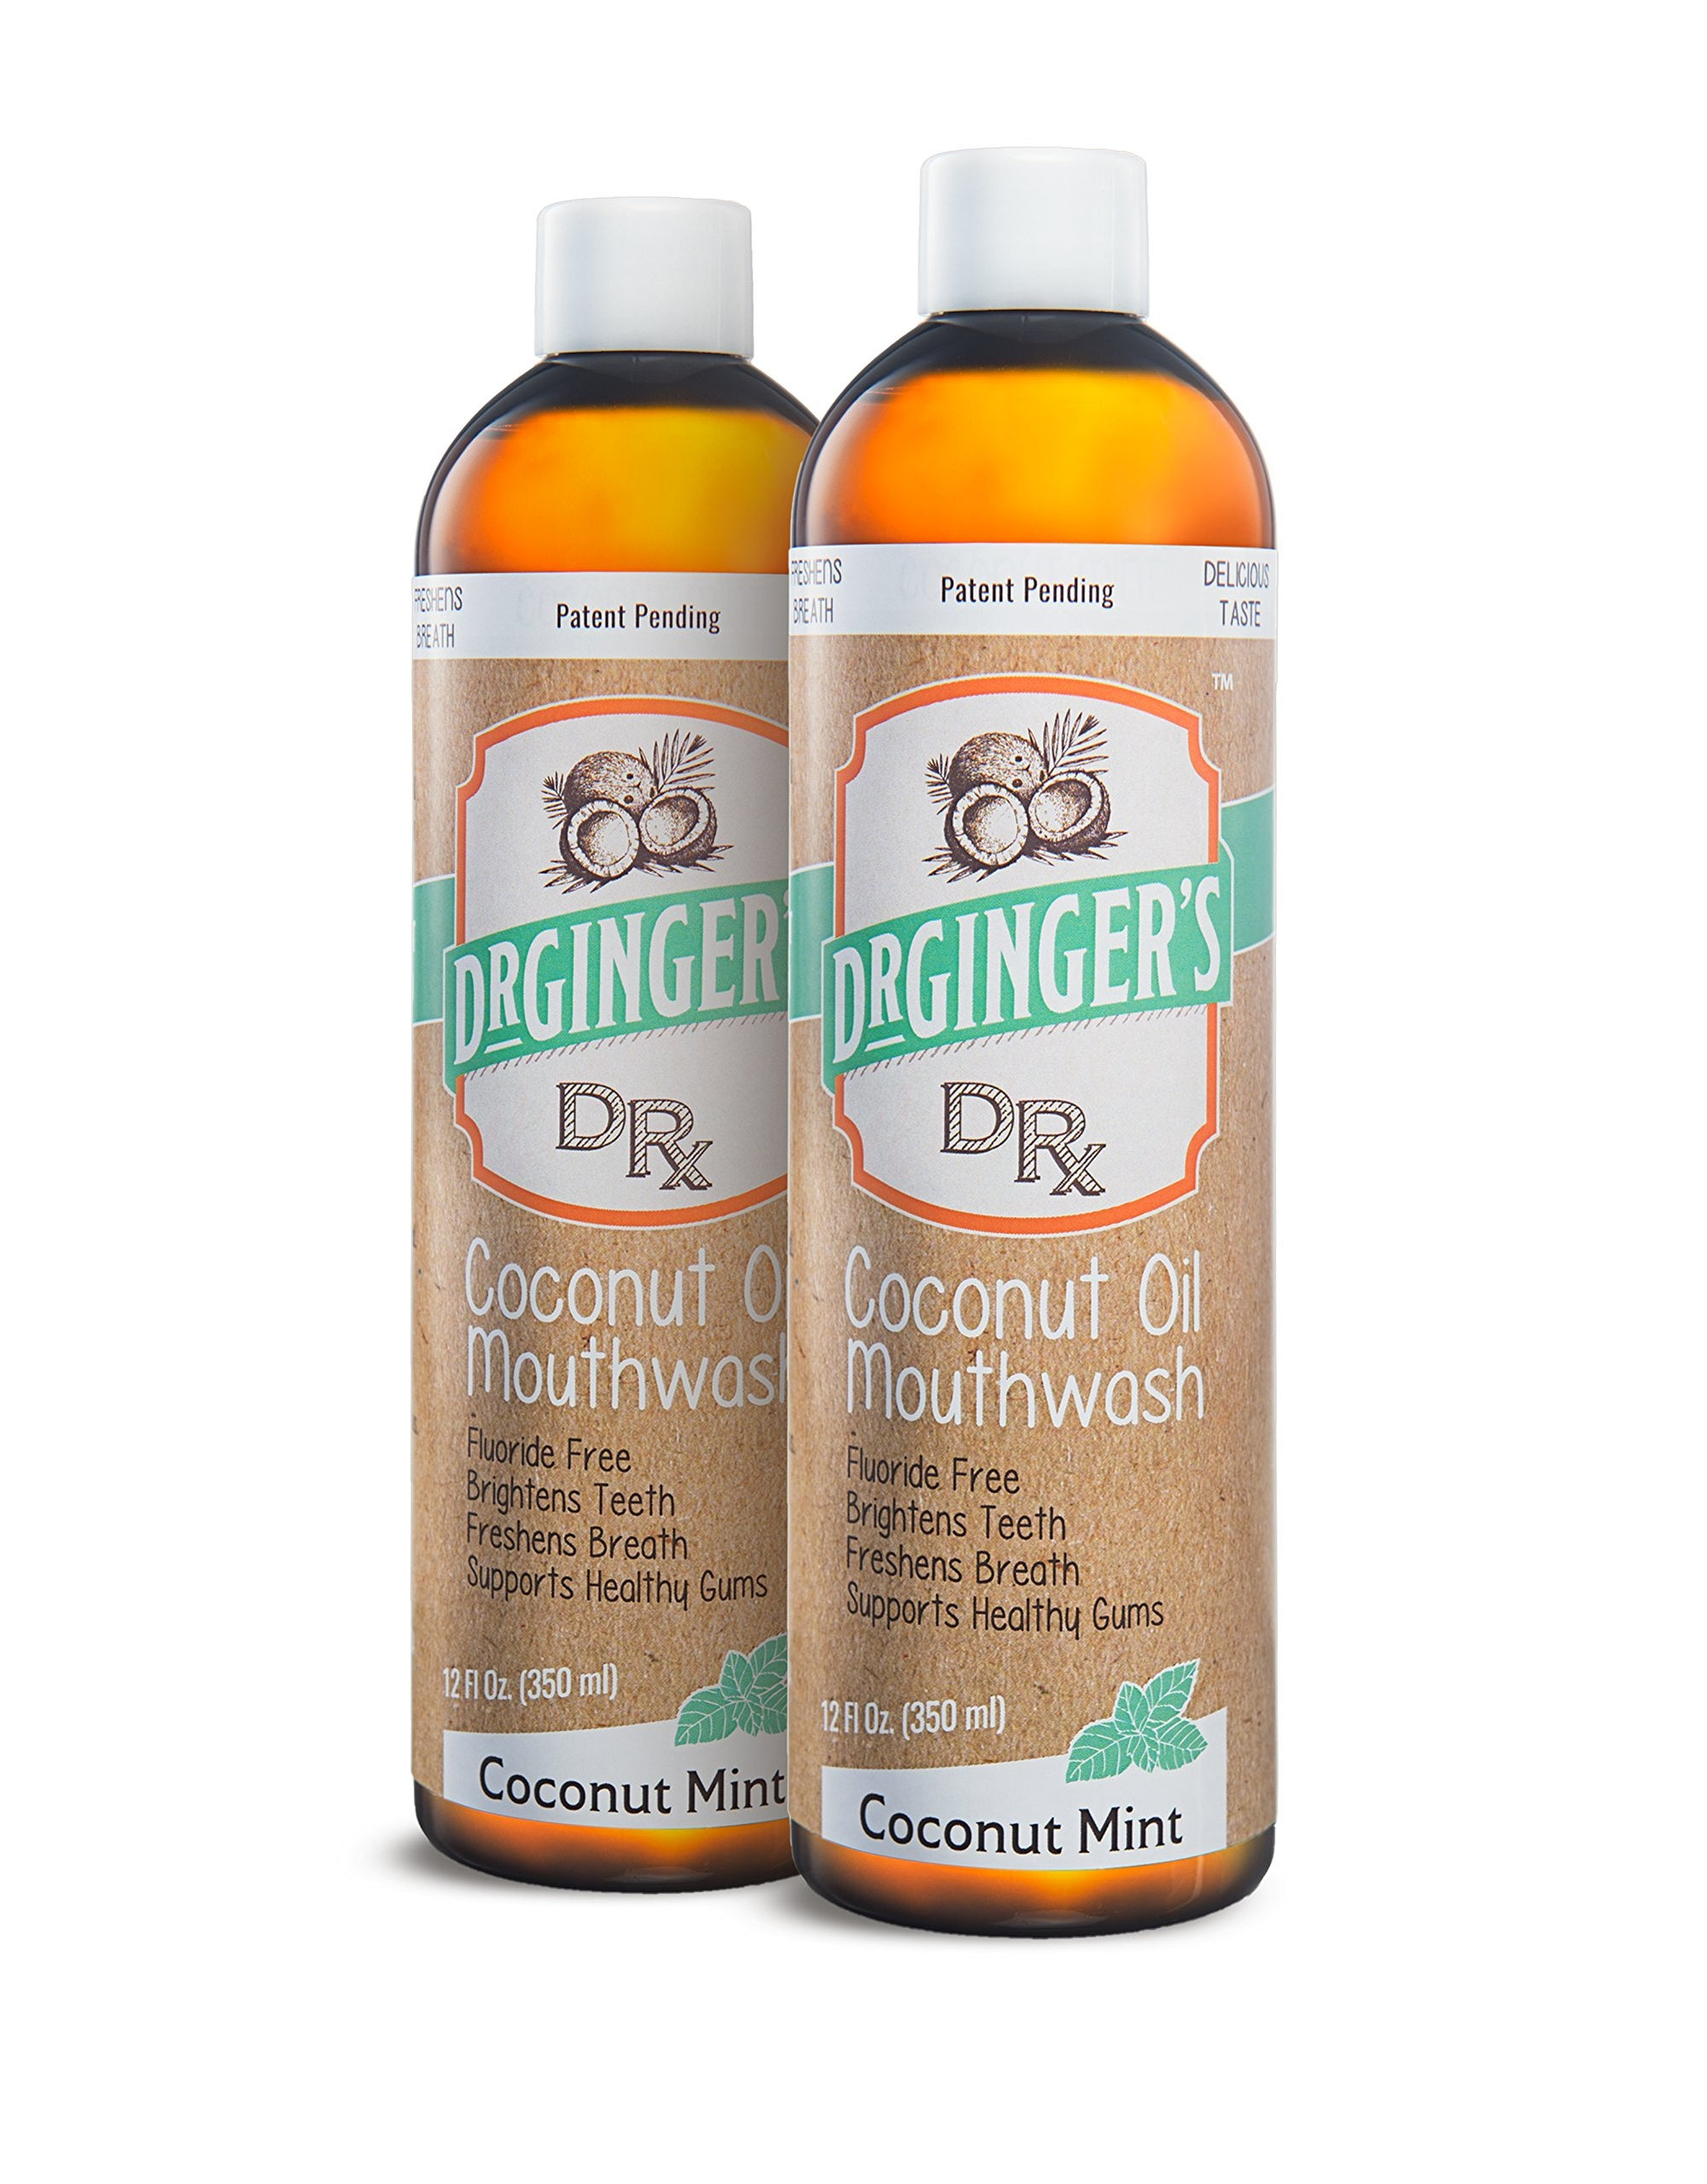 Dr Ginger's Coconut Oil Pulling & Whitening Mouthwash | Natural Ingredients | Freshens Breath & Promotes Good Oral Health | Delicious Coconut Mint Flavor | 12 oz | 2 Pack Bundle